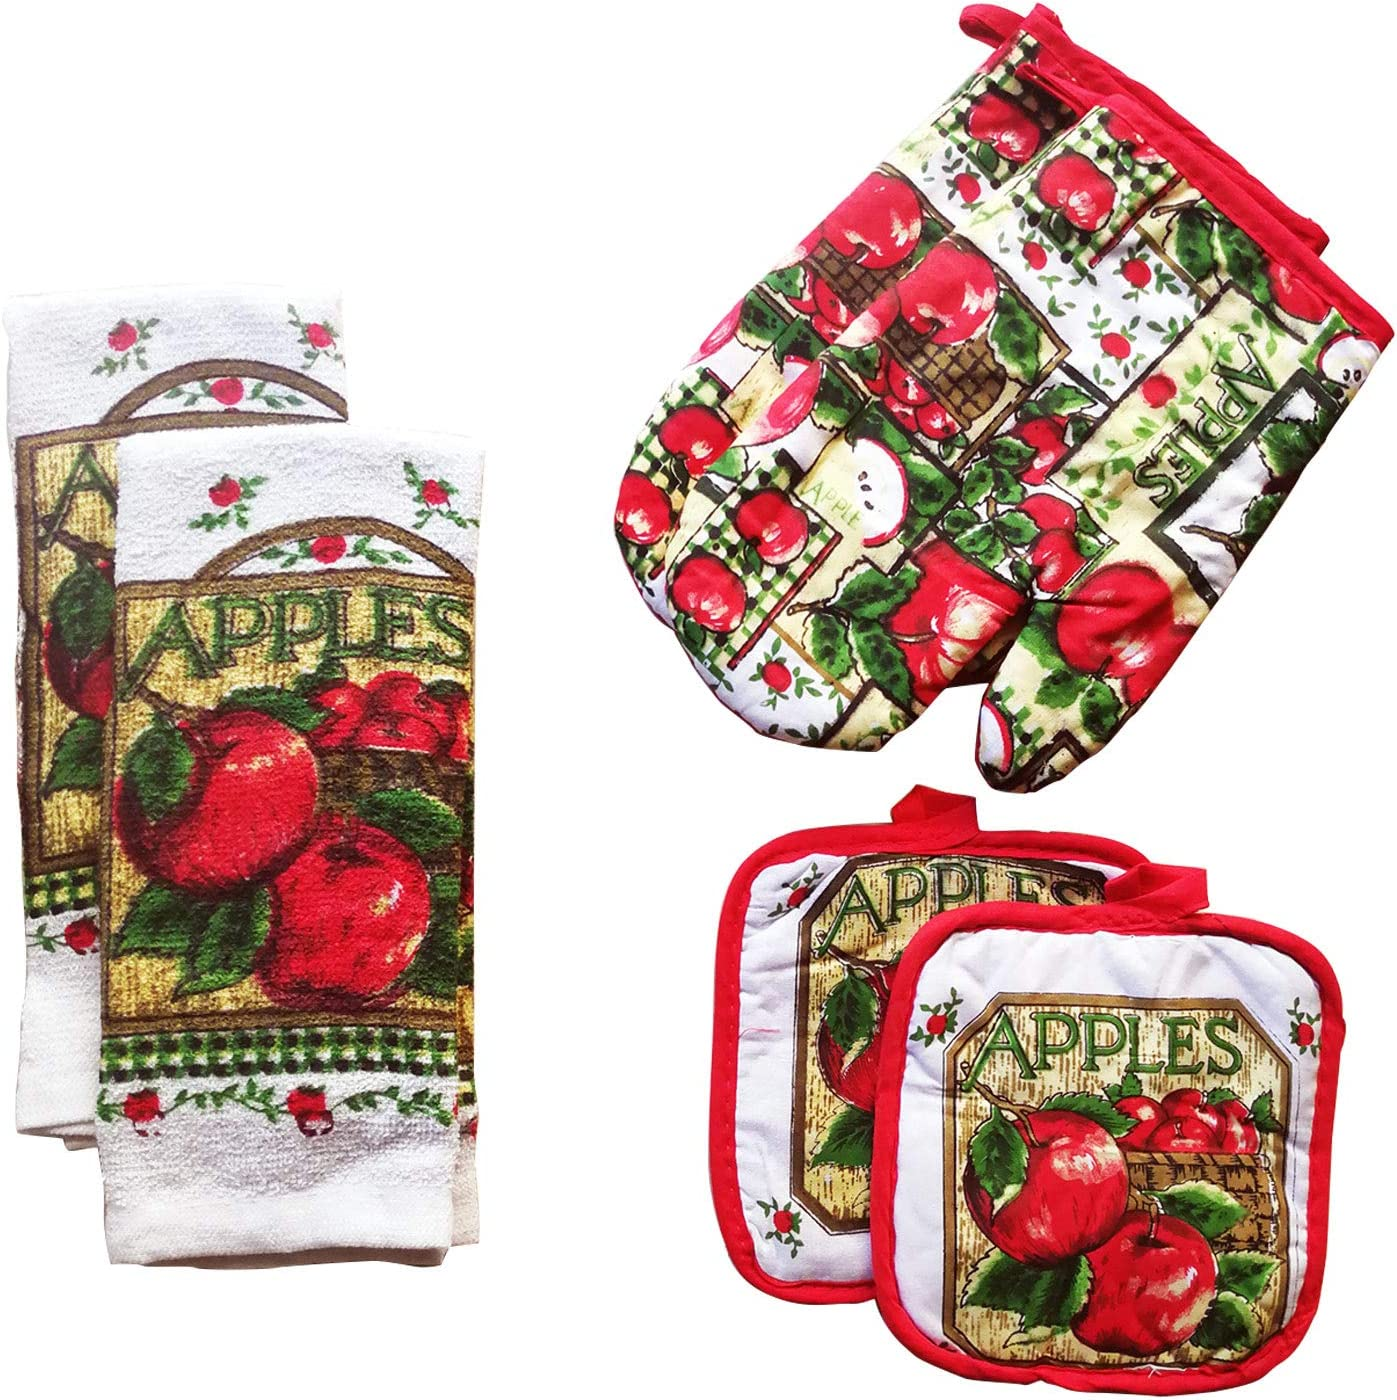 FSTIKO Delicious Apple Themed 6-Piece Kitchen Linen Set Includes 2 Oven Mitt, 2 Pot Holders and 2 Kitchen Towels Perfect for Cooking, Baking, Housewarming Gift (Set of 6 Piece)